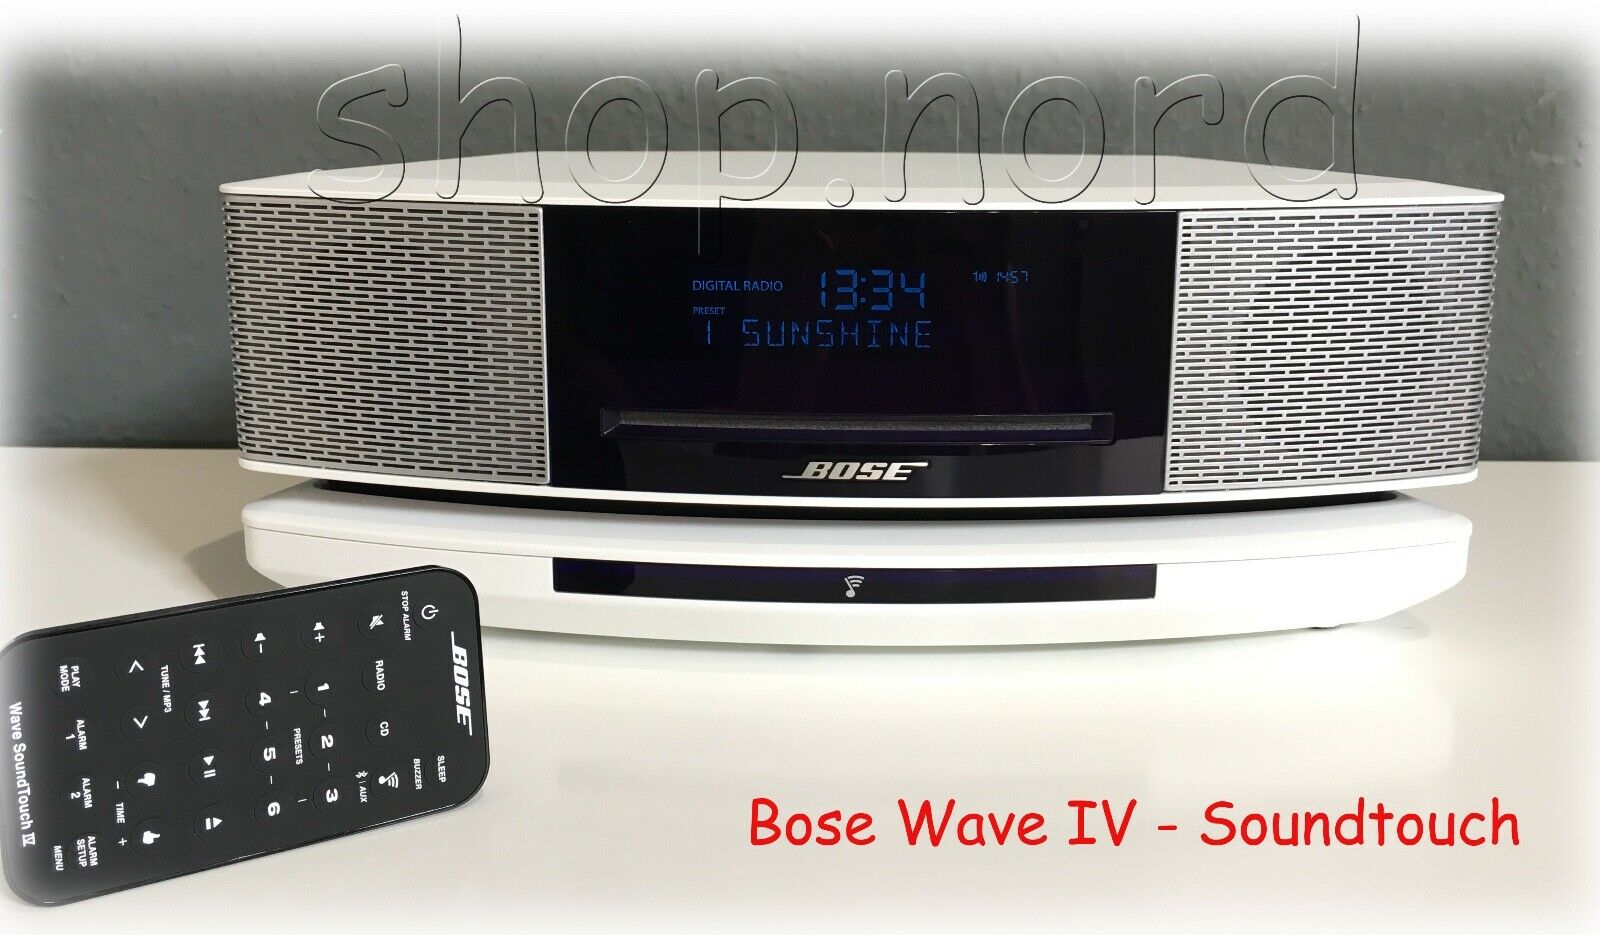 bose wave soundtouch music system iv schwarz black restgarantie ovp eur 745 00 picclick de. Black Bedroom Furniture Sets. Home Design Ideas